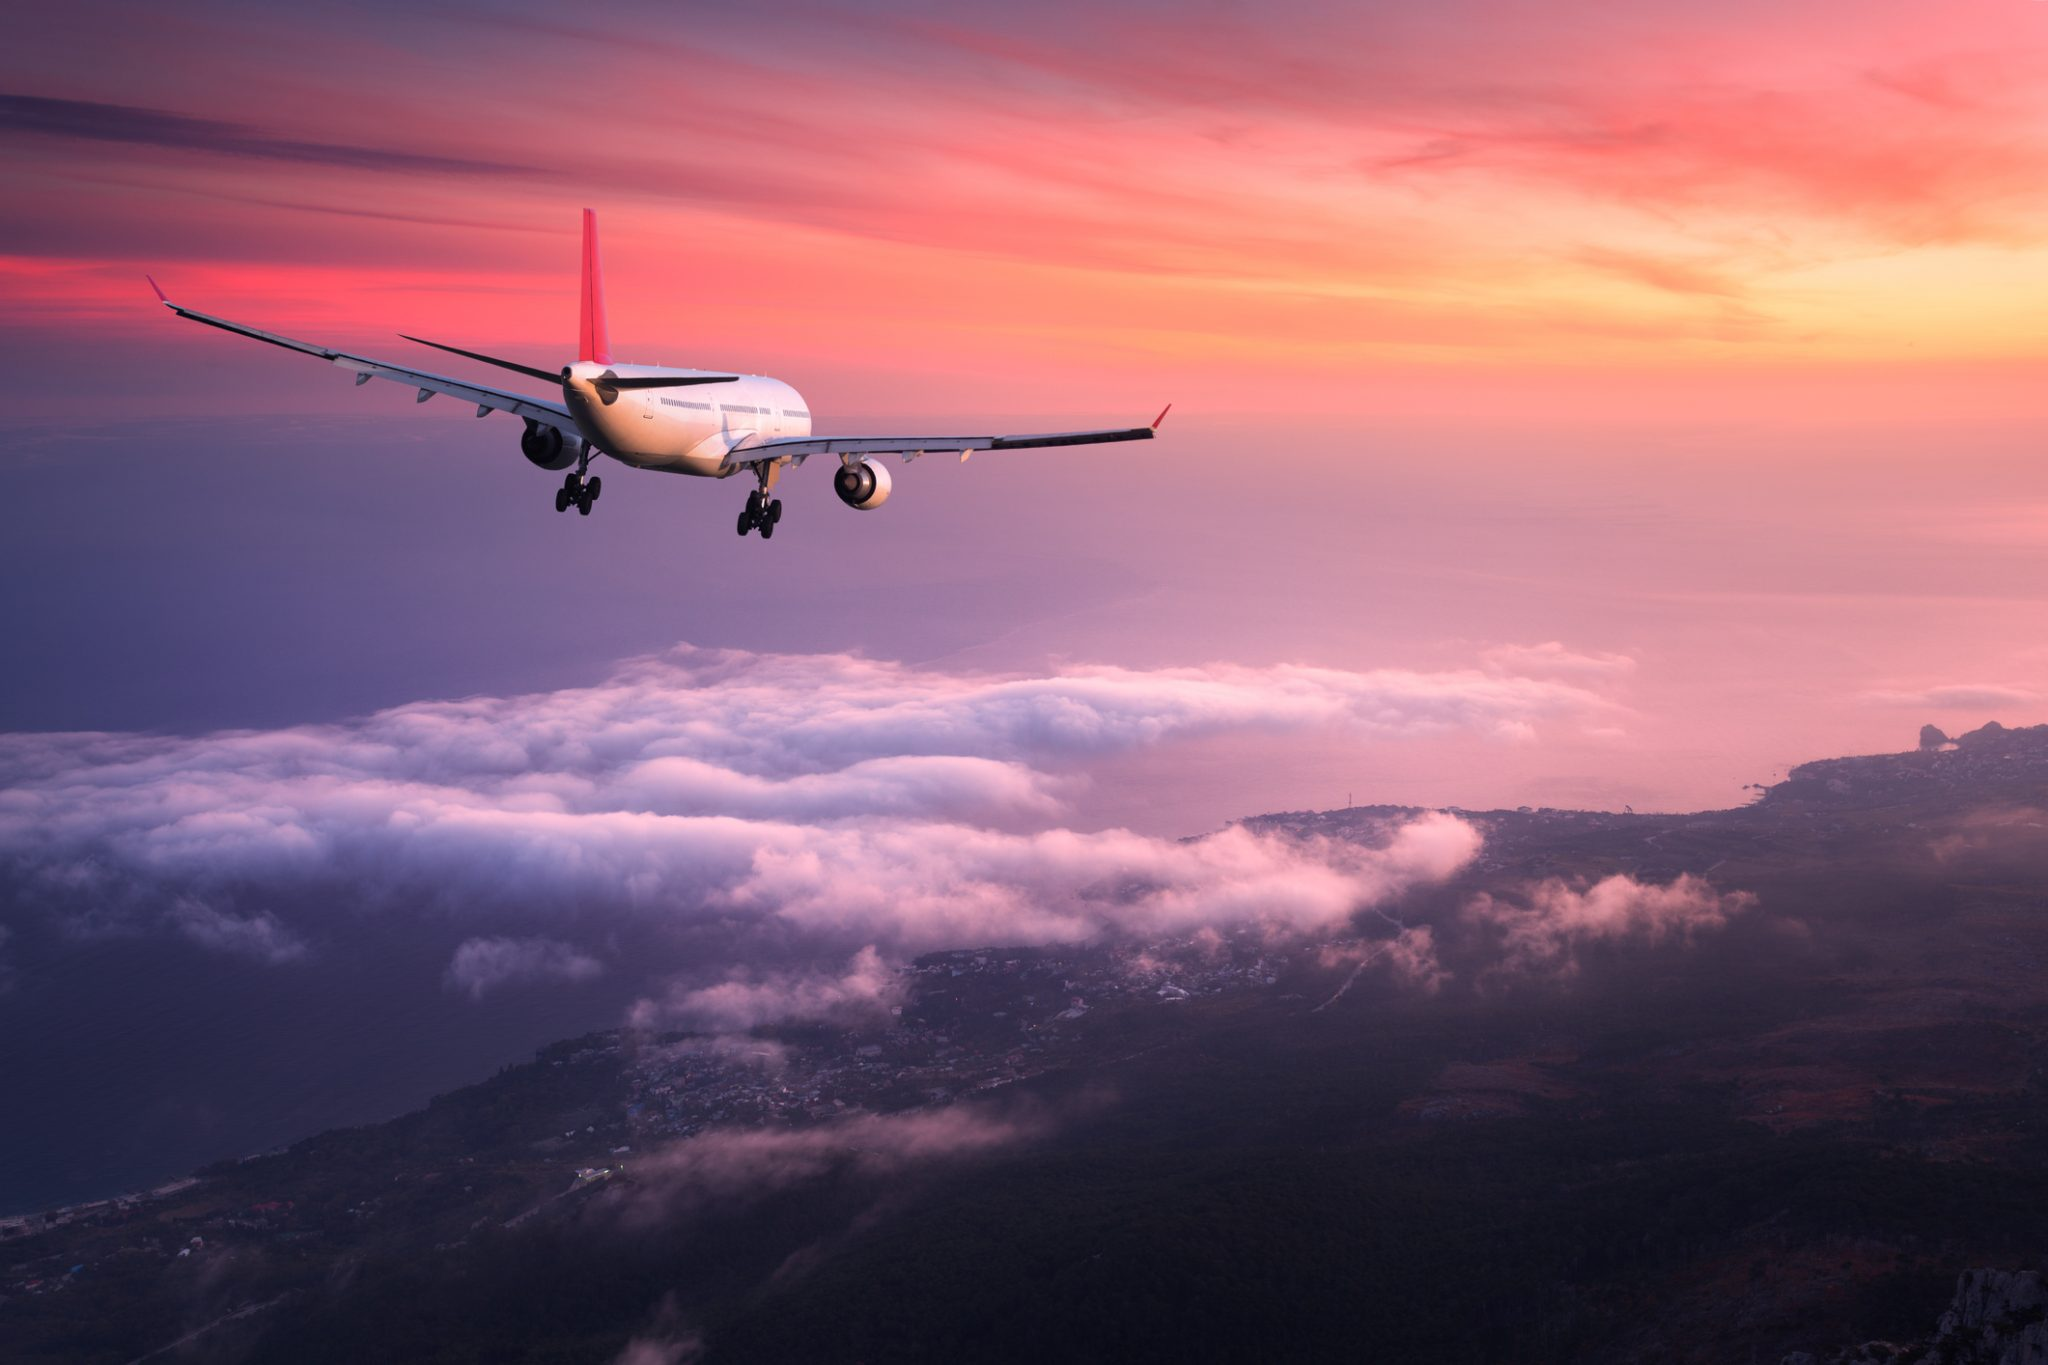 Aeroplane and sunset